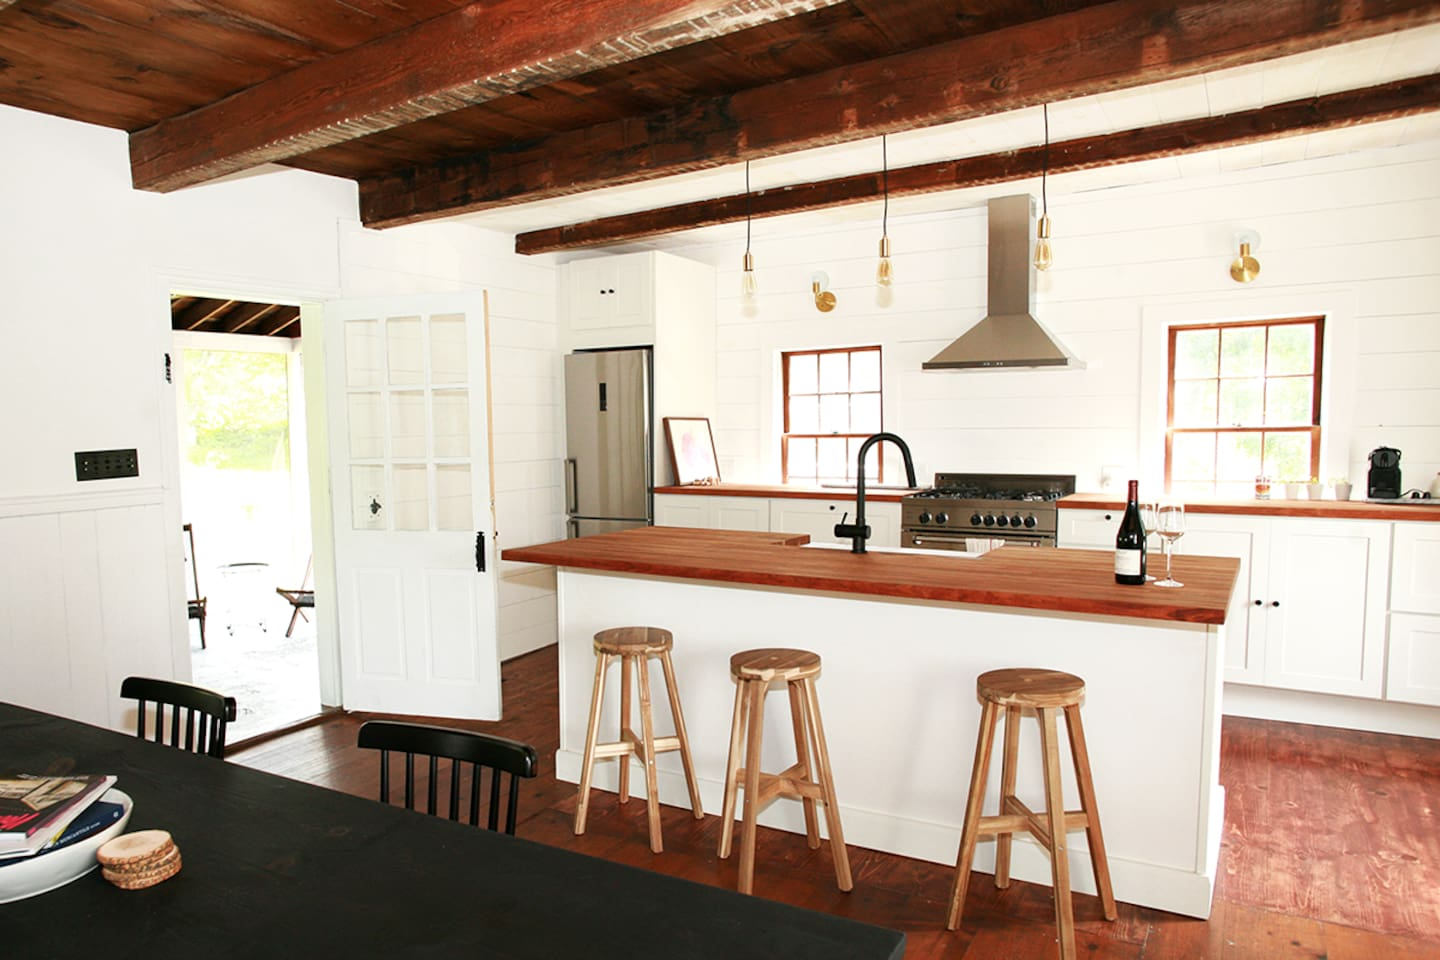 The kitchen door leads to a screened in porch with outdoor lounge chairs and a dining table.